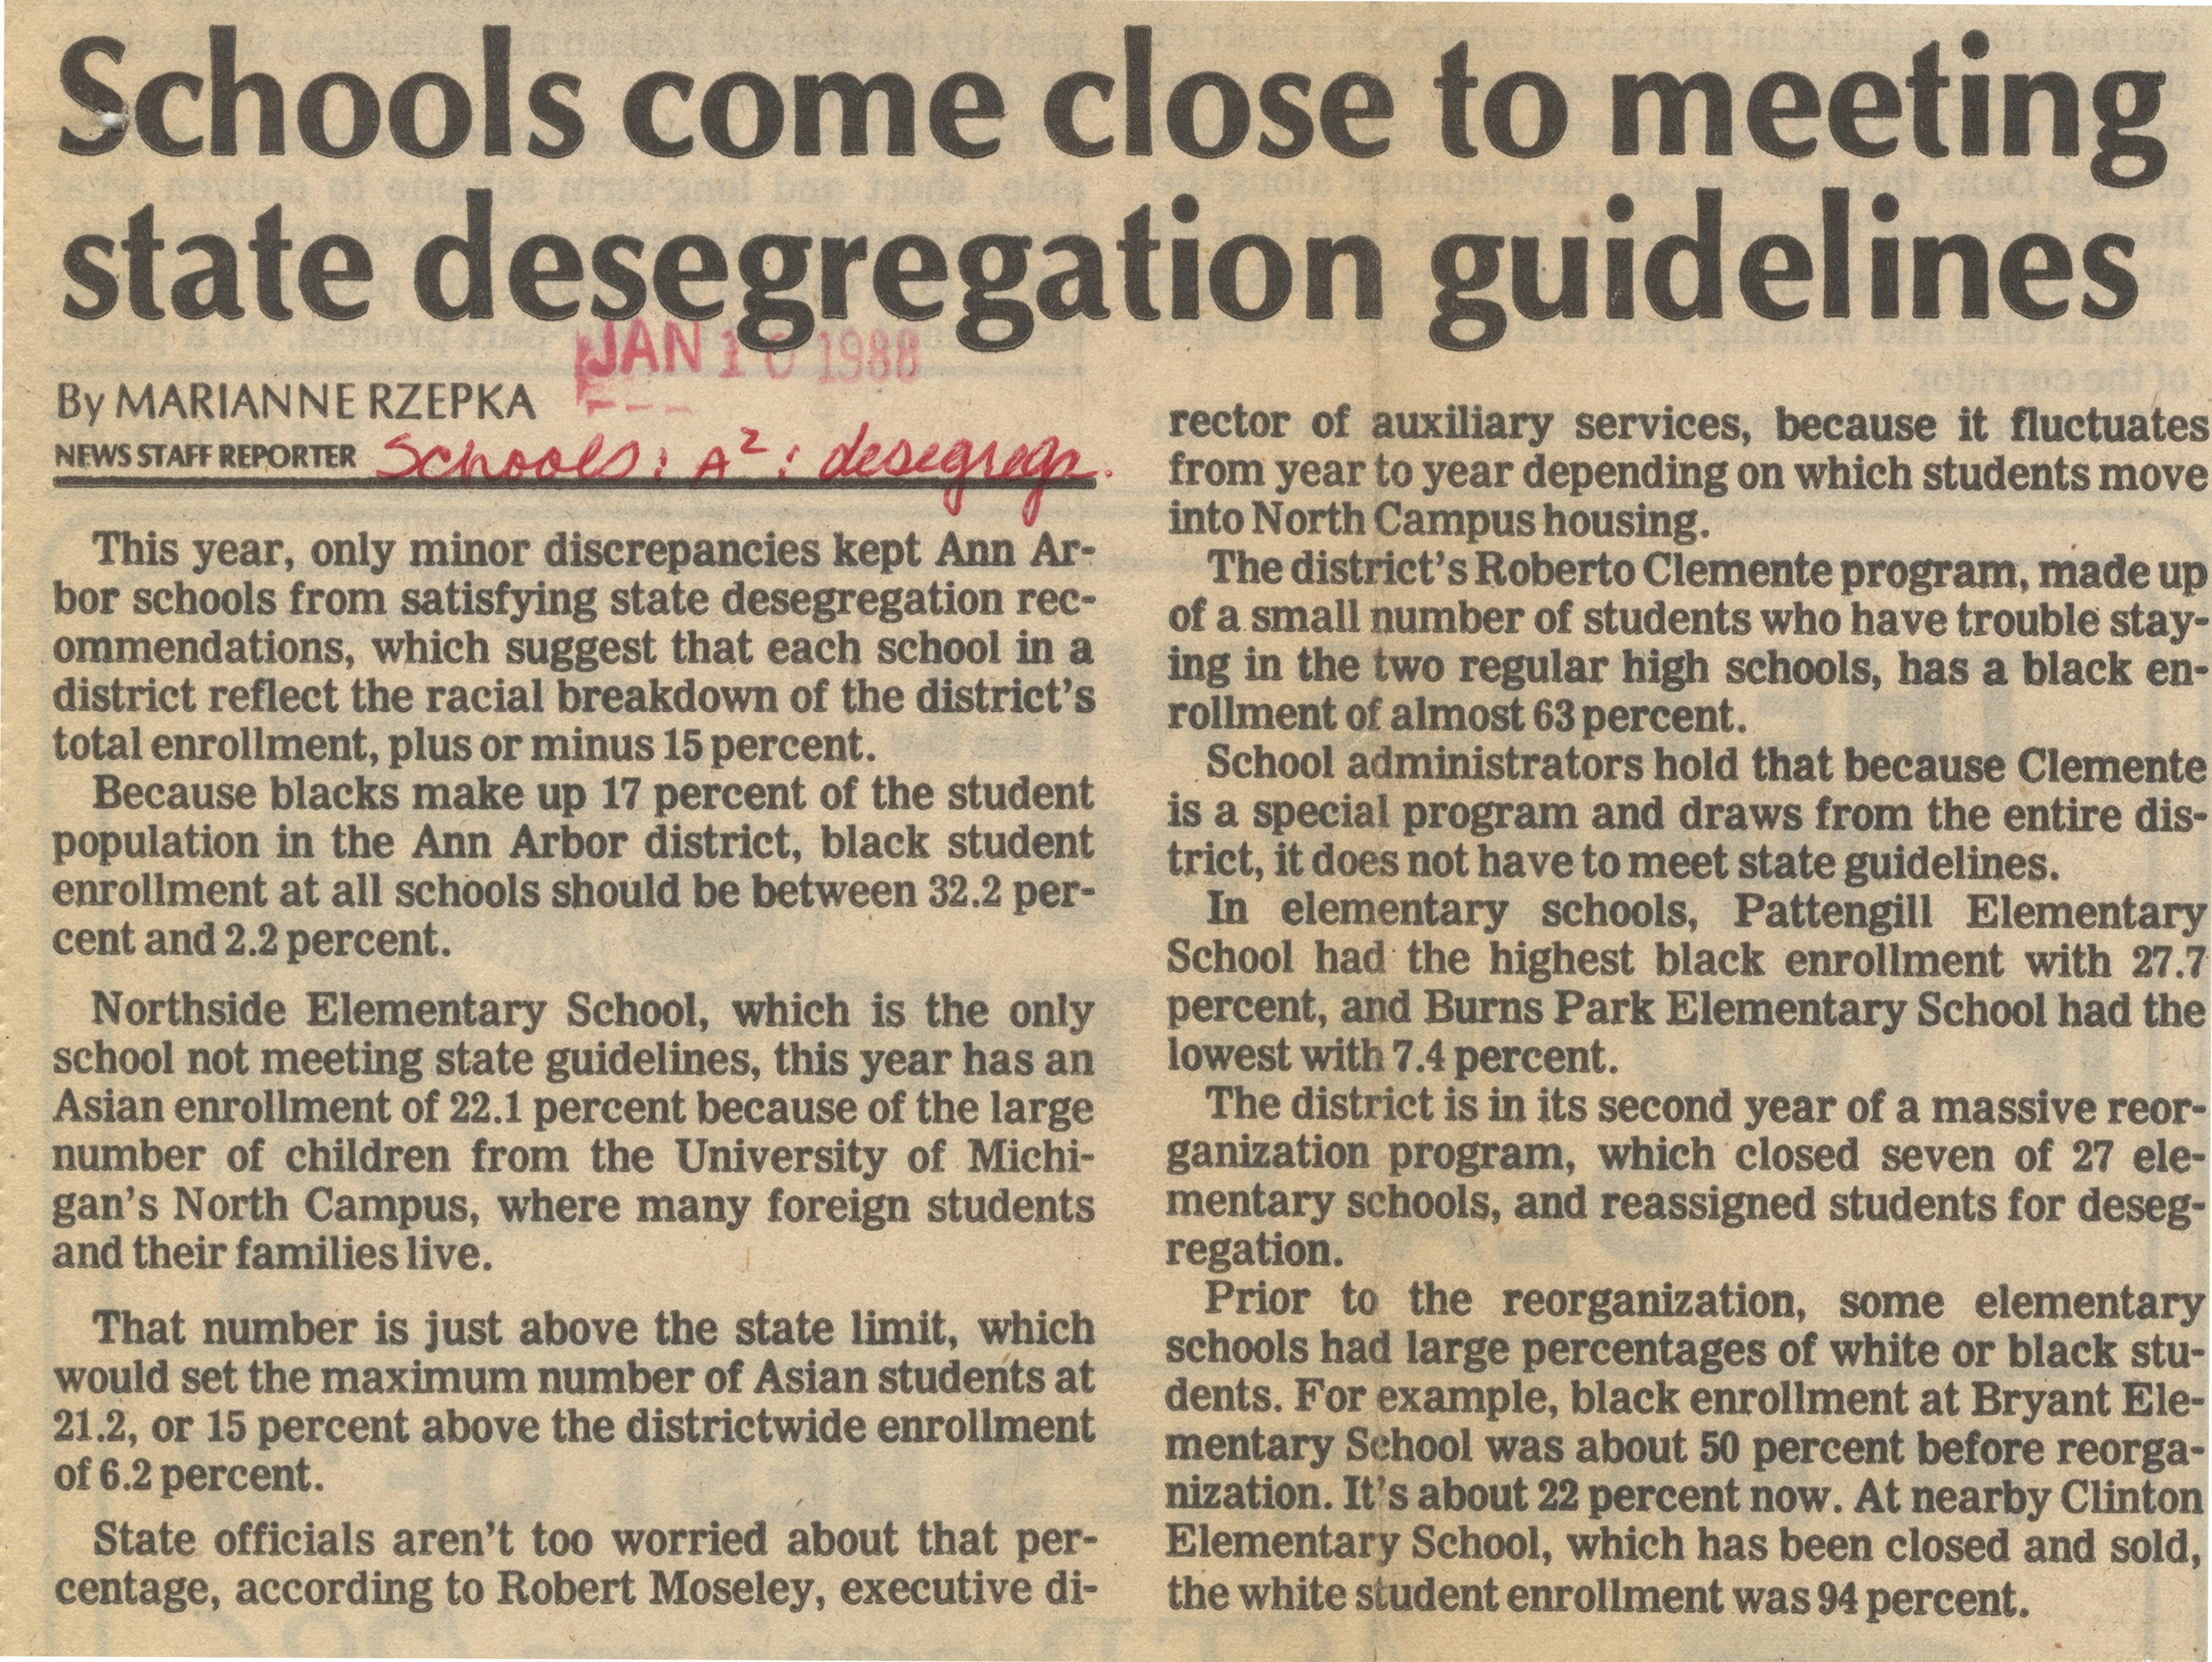 Schools Come Close To Meeting State Desegregation Guidelines image